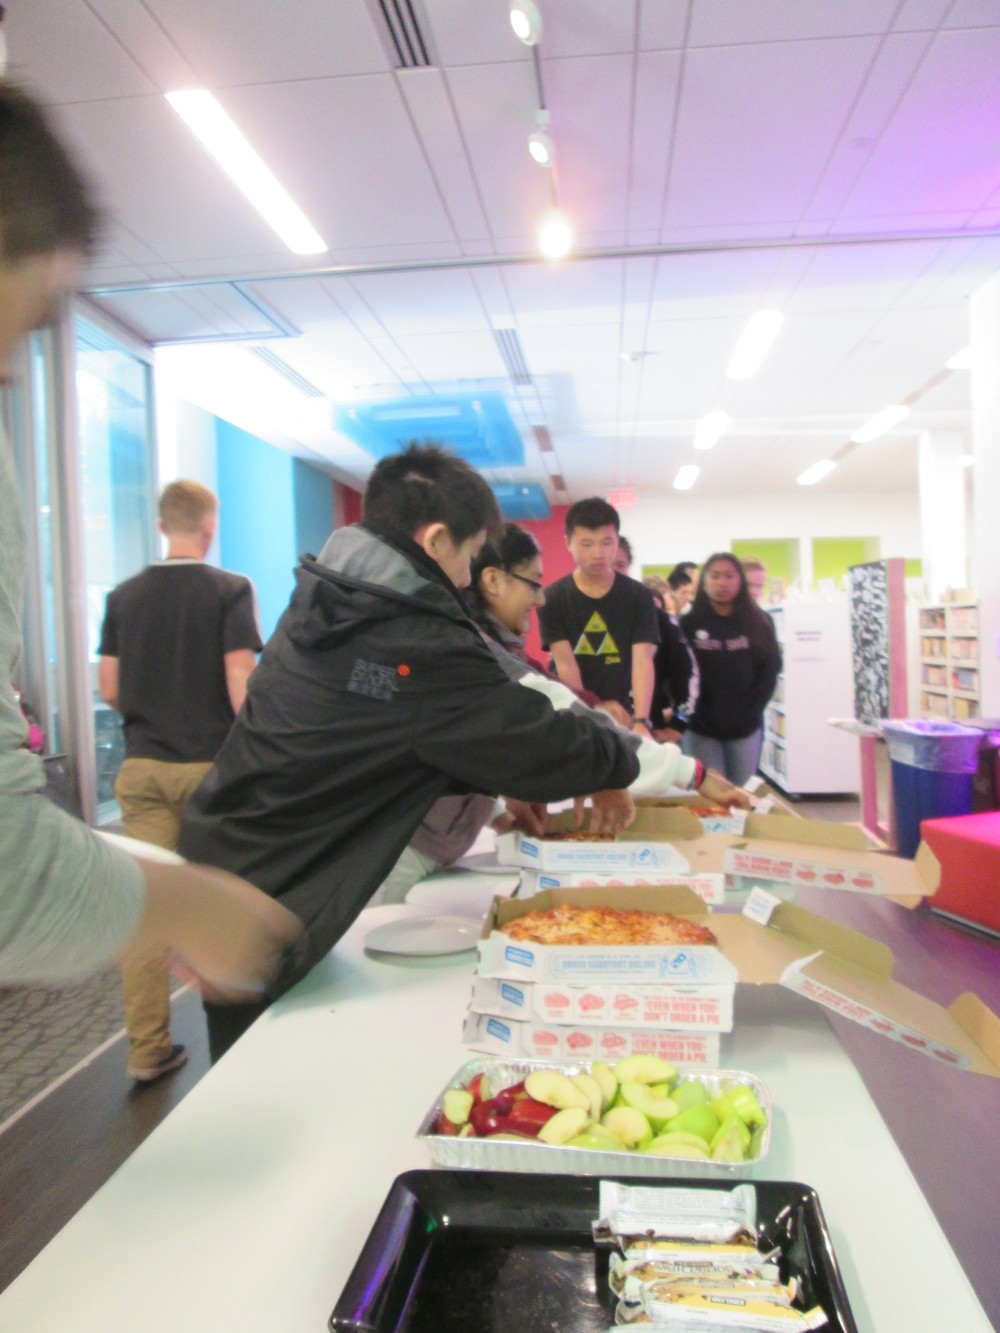 Sunday lunch: fueling innovation with pizza, apple slices, and Rice Krispie treats